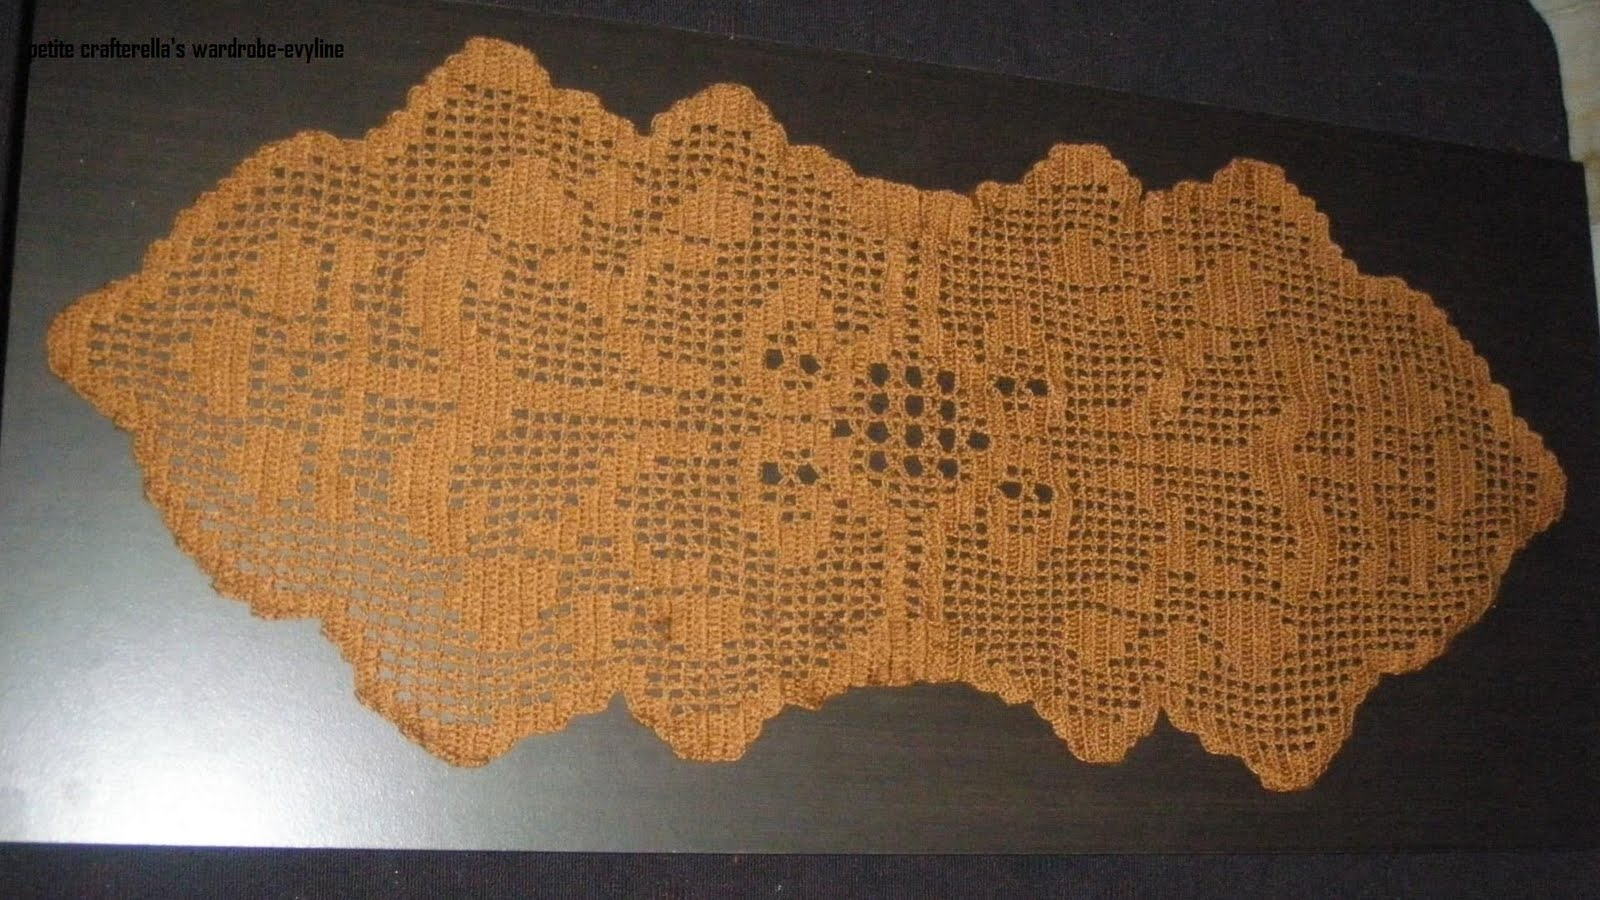 Free Filet Crochet Charts and Patterns: Filet Crochet Baby Chicks